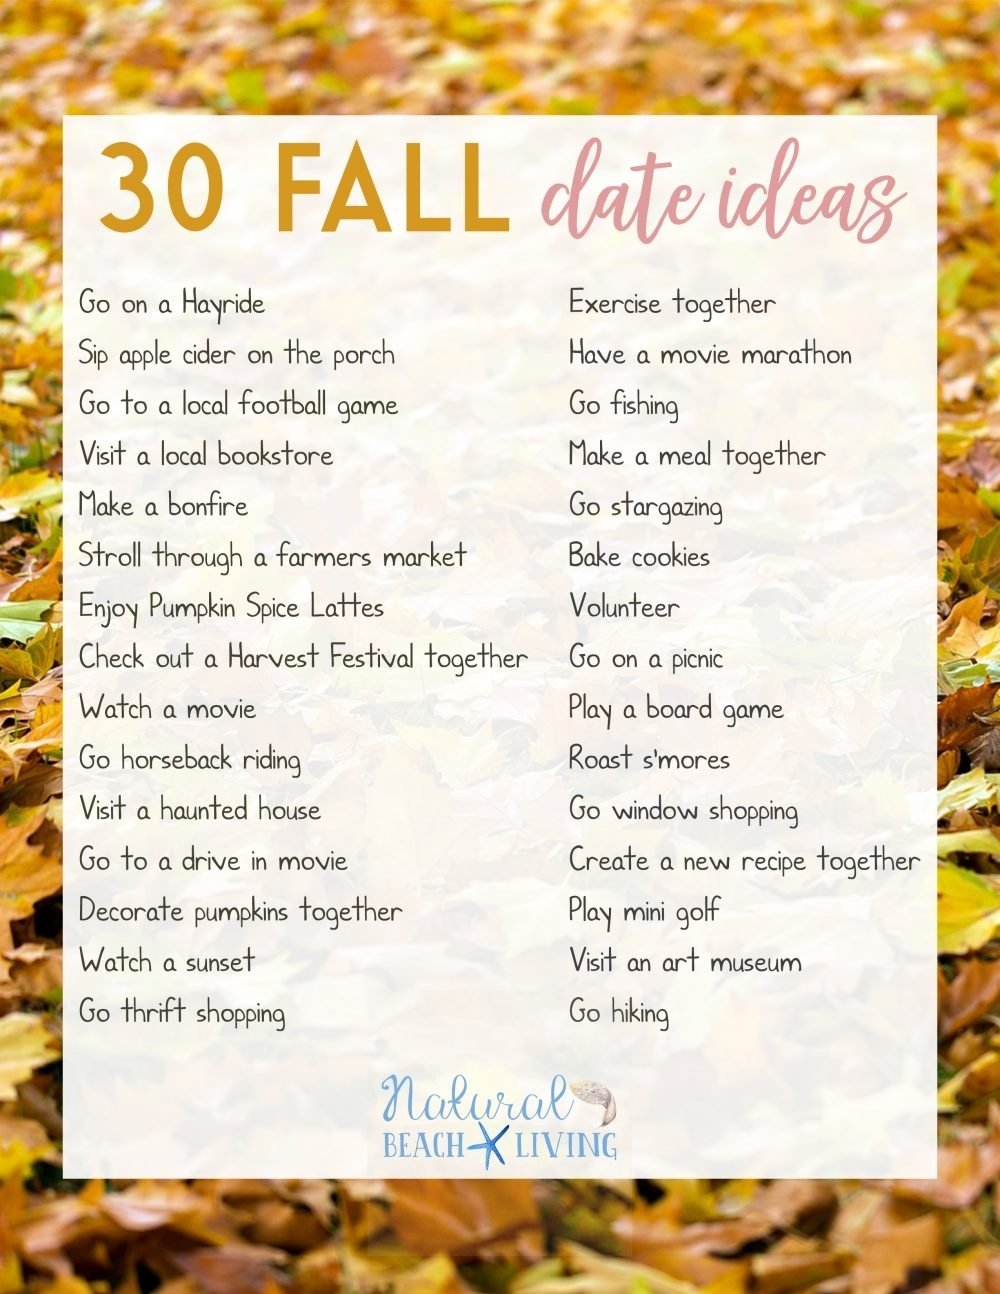 10 Lovable Date Ideas For Married Couples fun date night ideas for fall natural beach living 22 2021